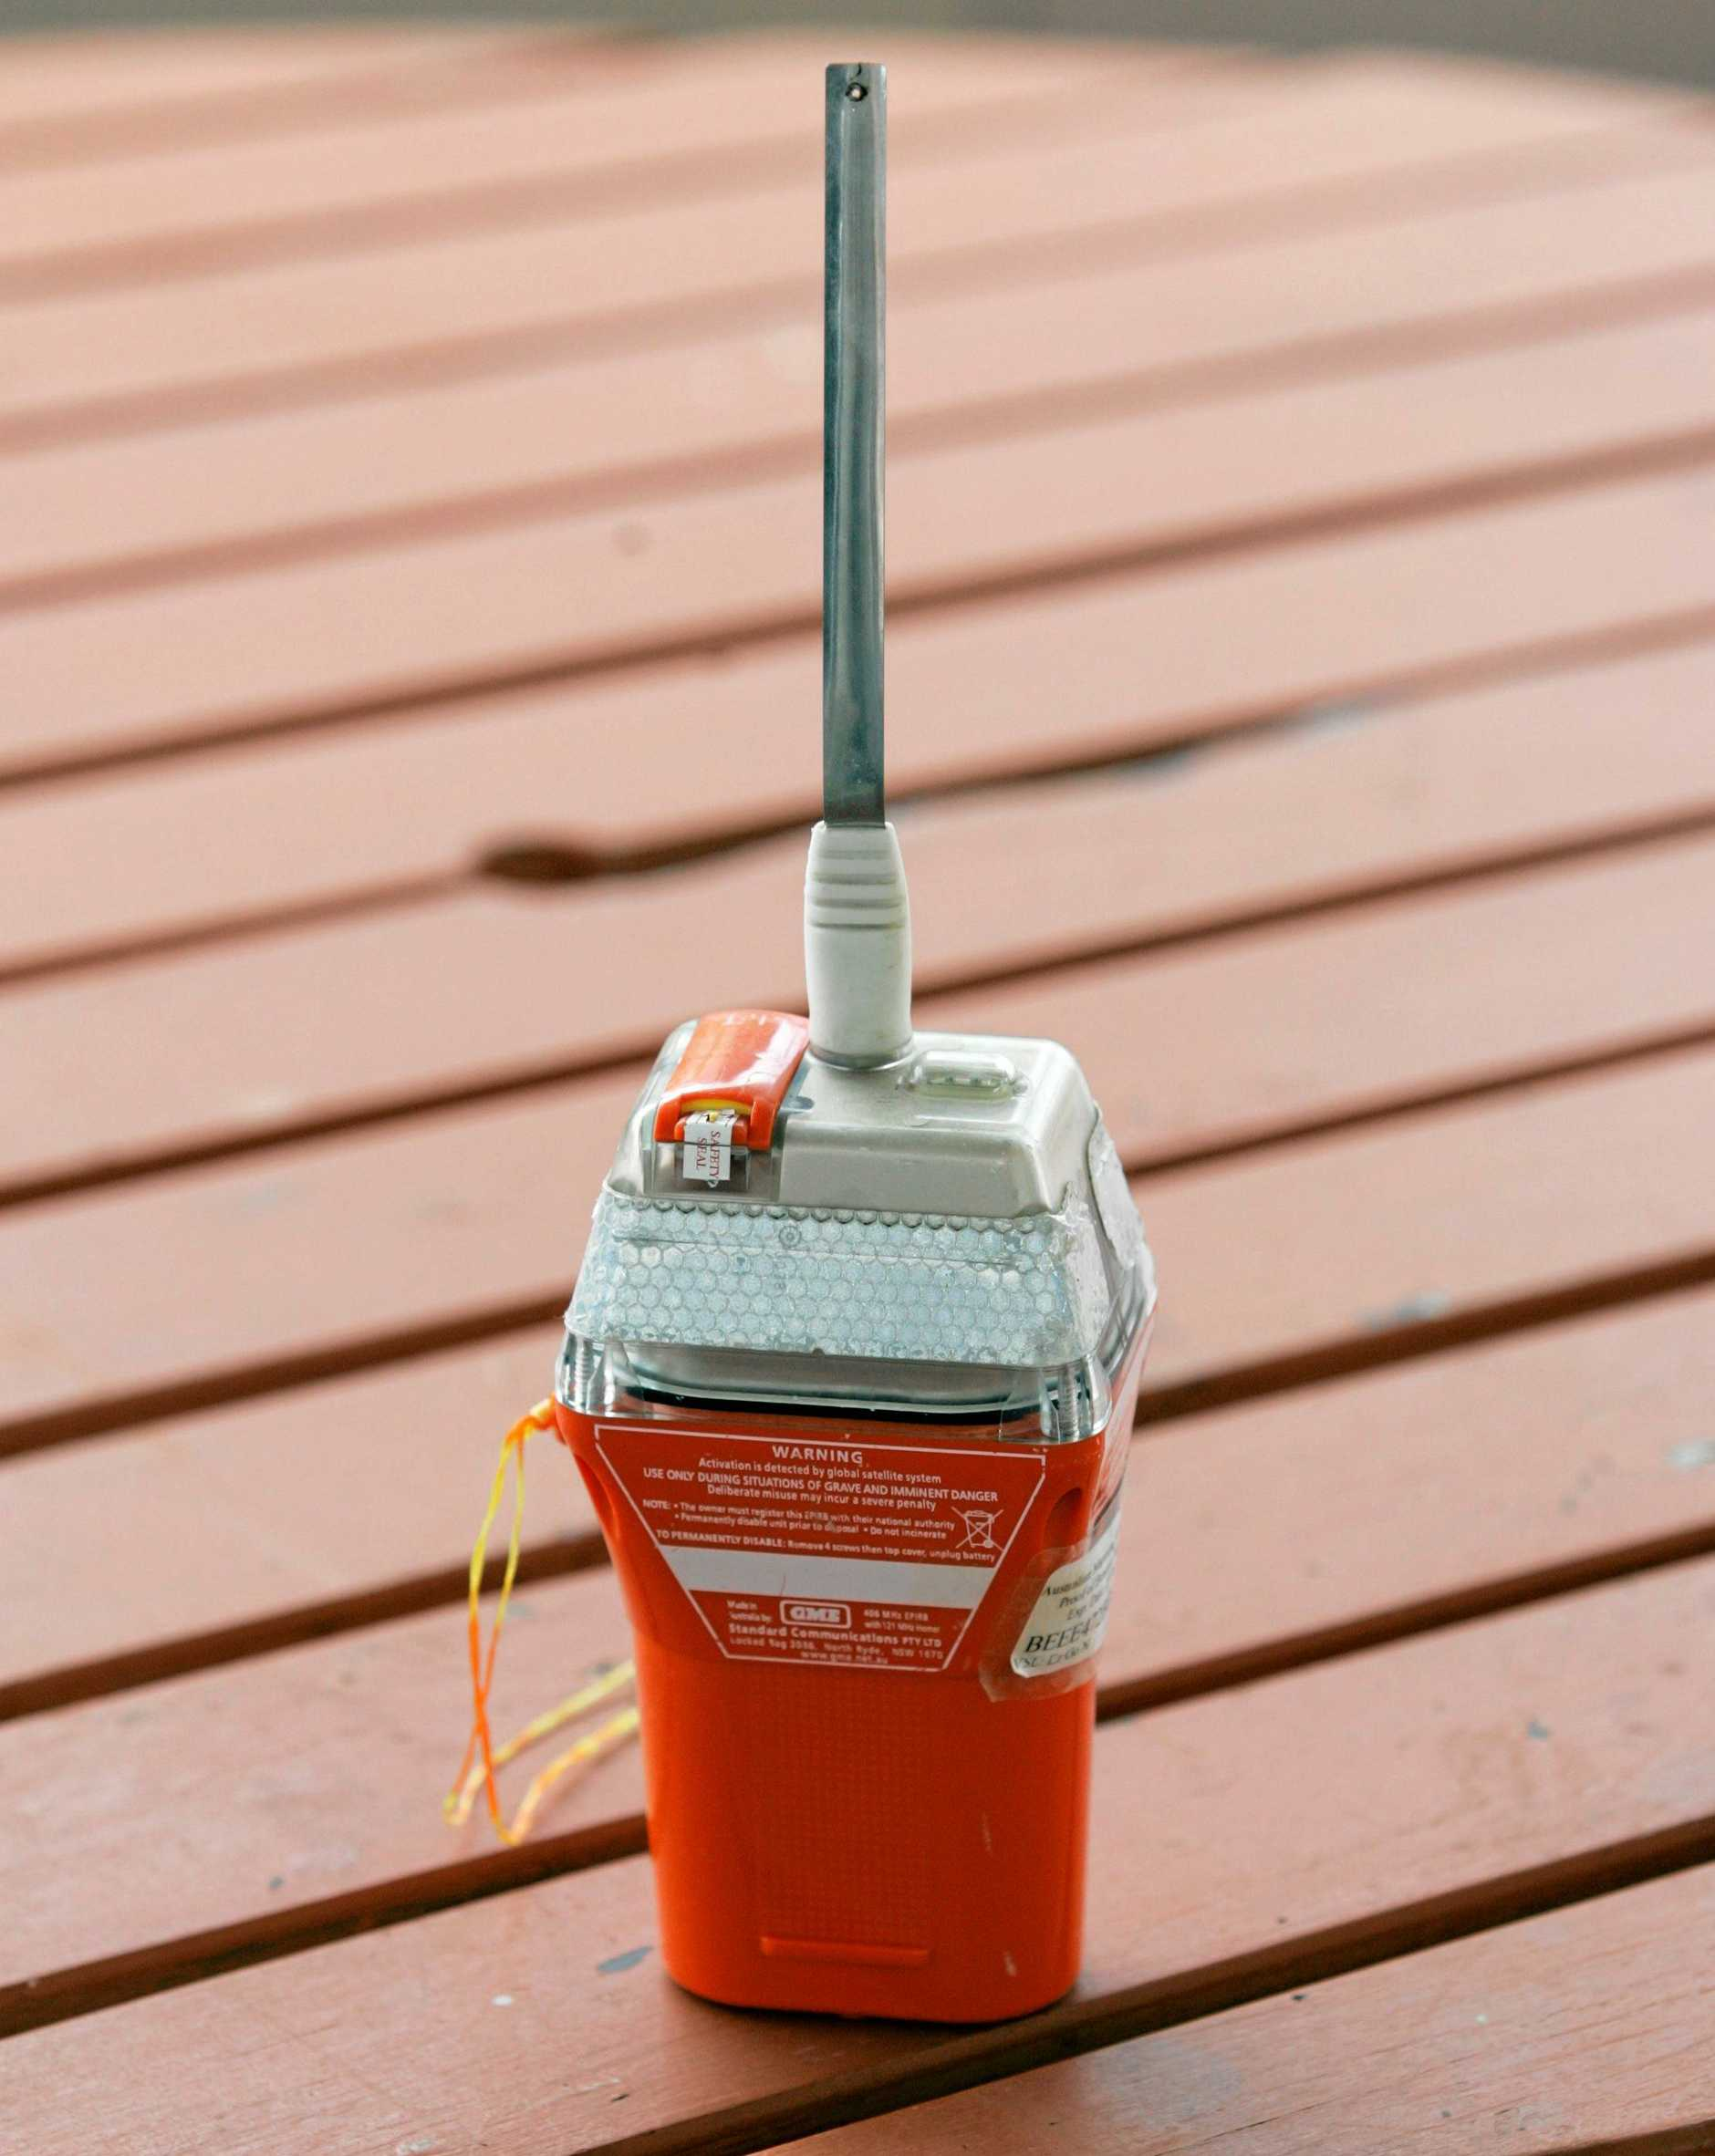 An EPIRB - Emergency position indicating radio beacon.